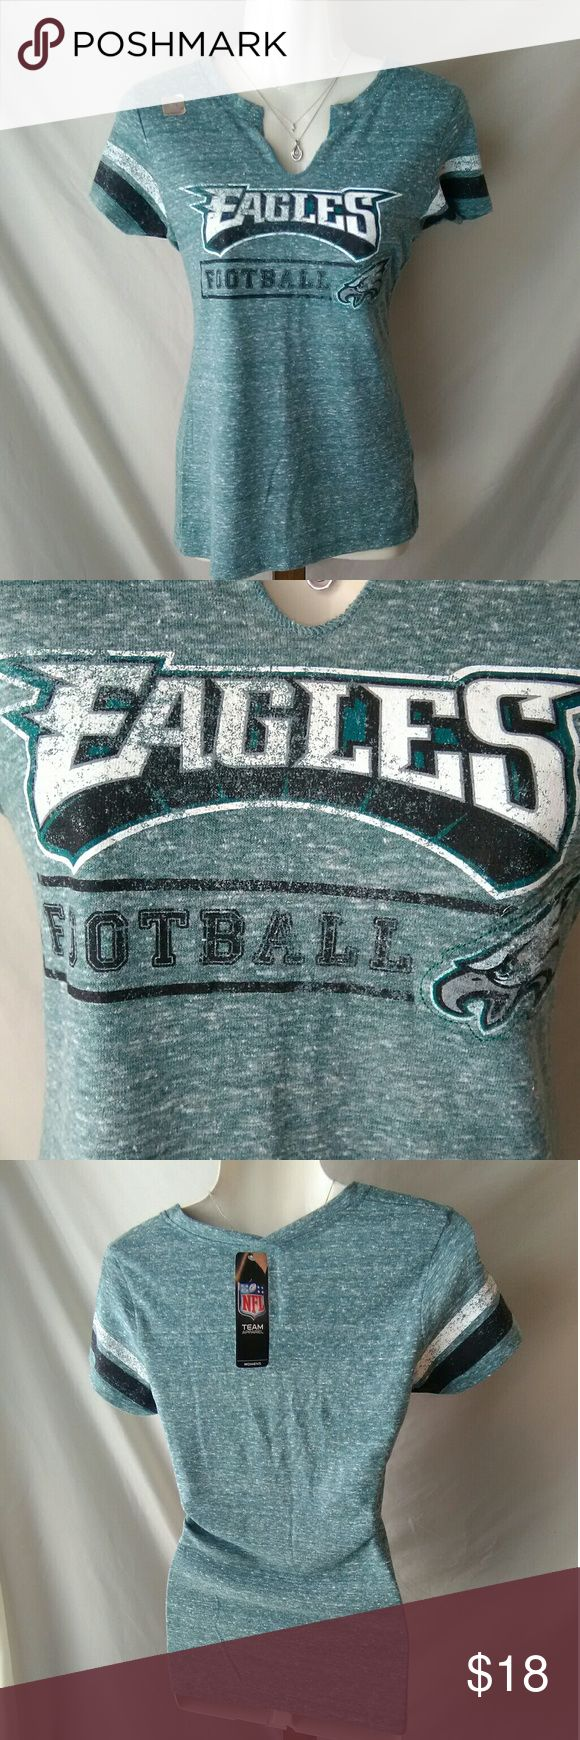 NWT Philadelphia eagles womens t-shirt Brand New with tags Officially licensed NFL Philadelphia Eagles distressed t-shirt women's size medium 47 Tops Tees - Short Sleeve